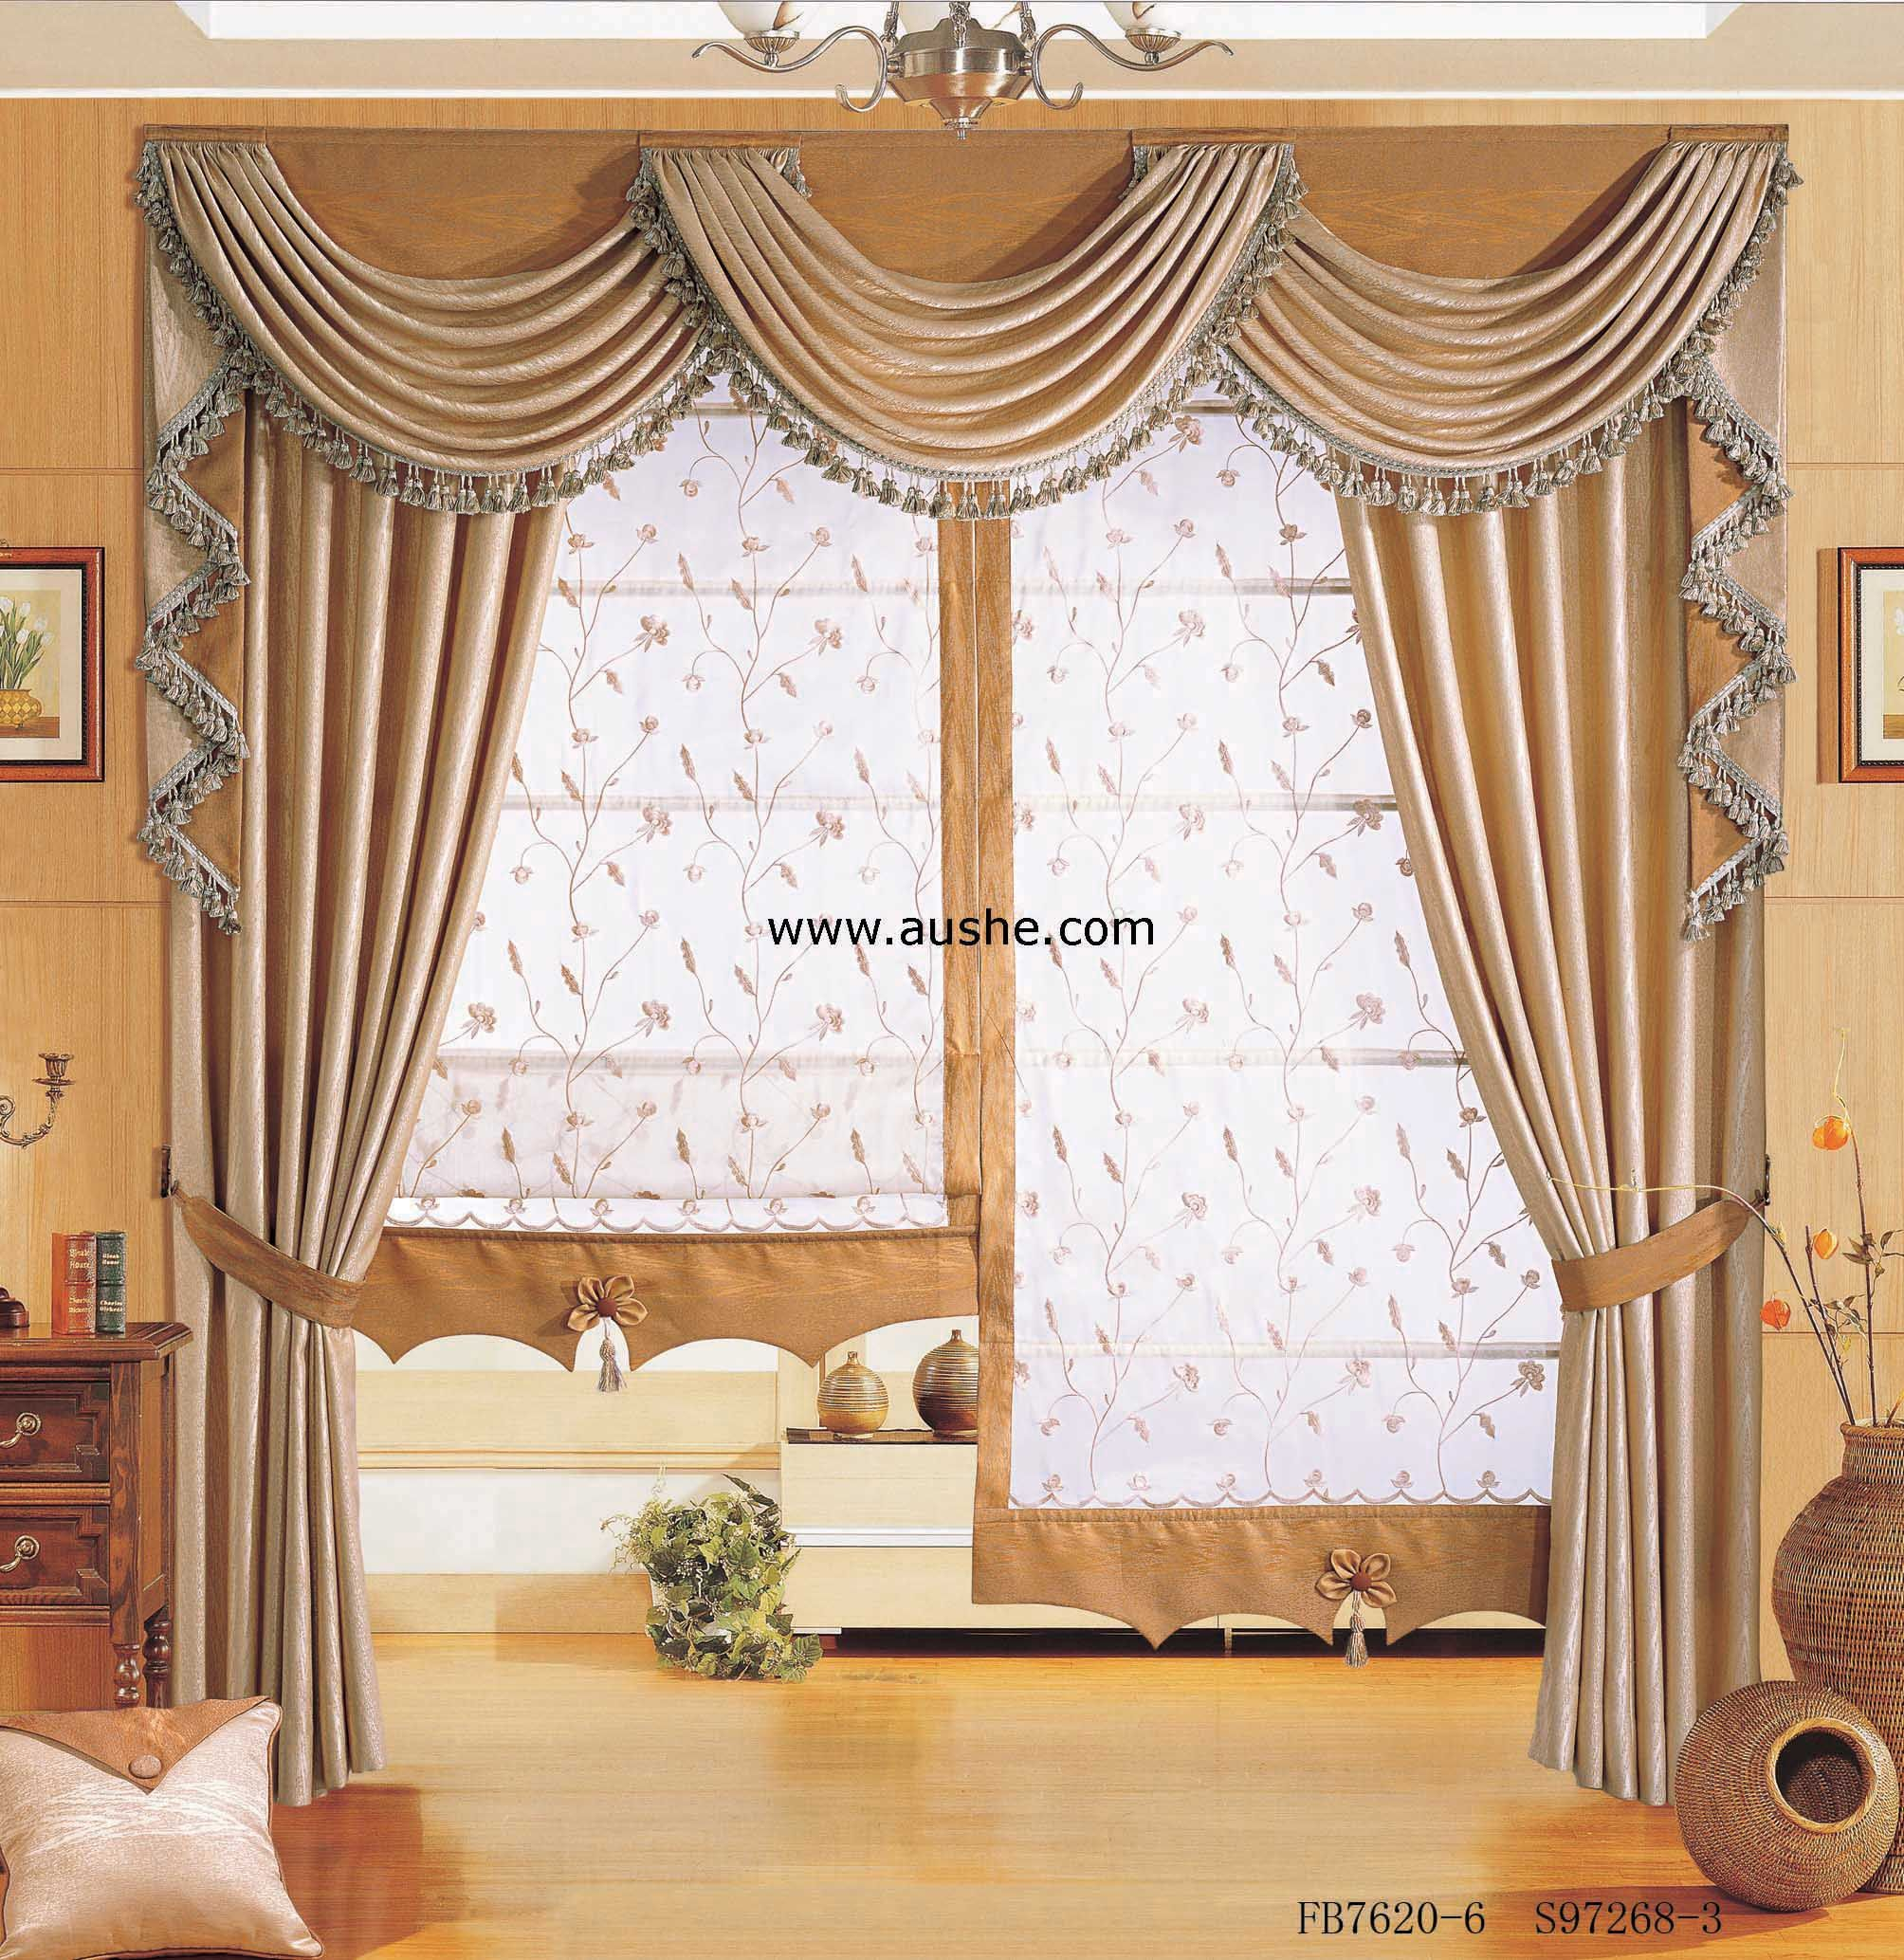 living rooms - Curtain Design Ideas For Living Room